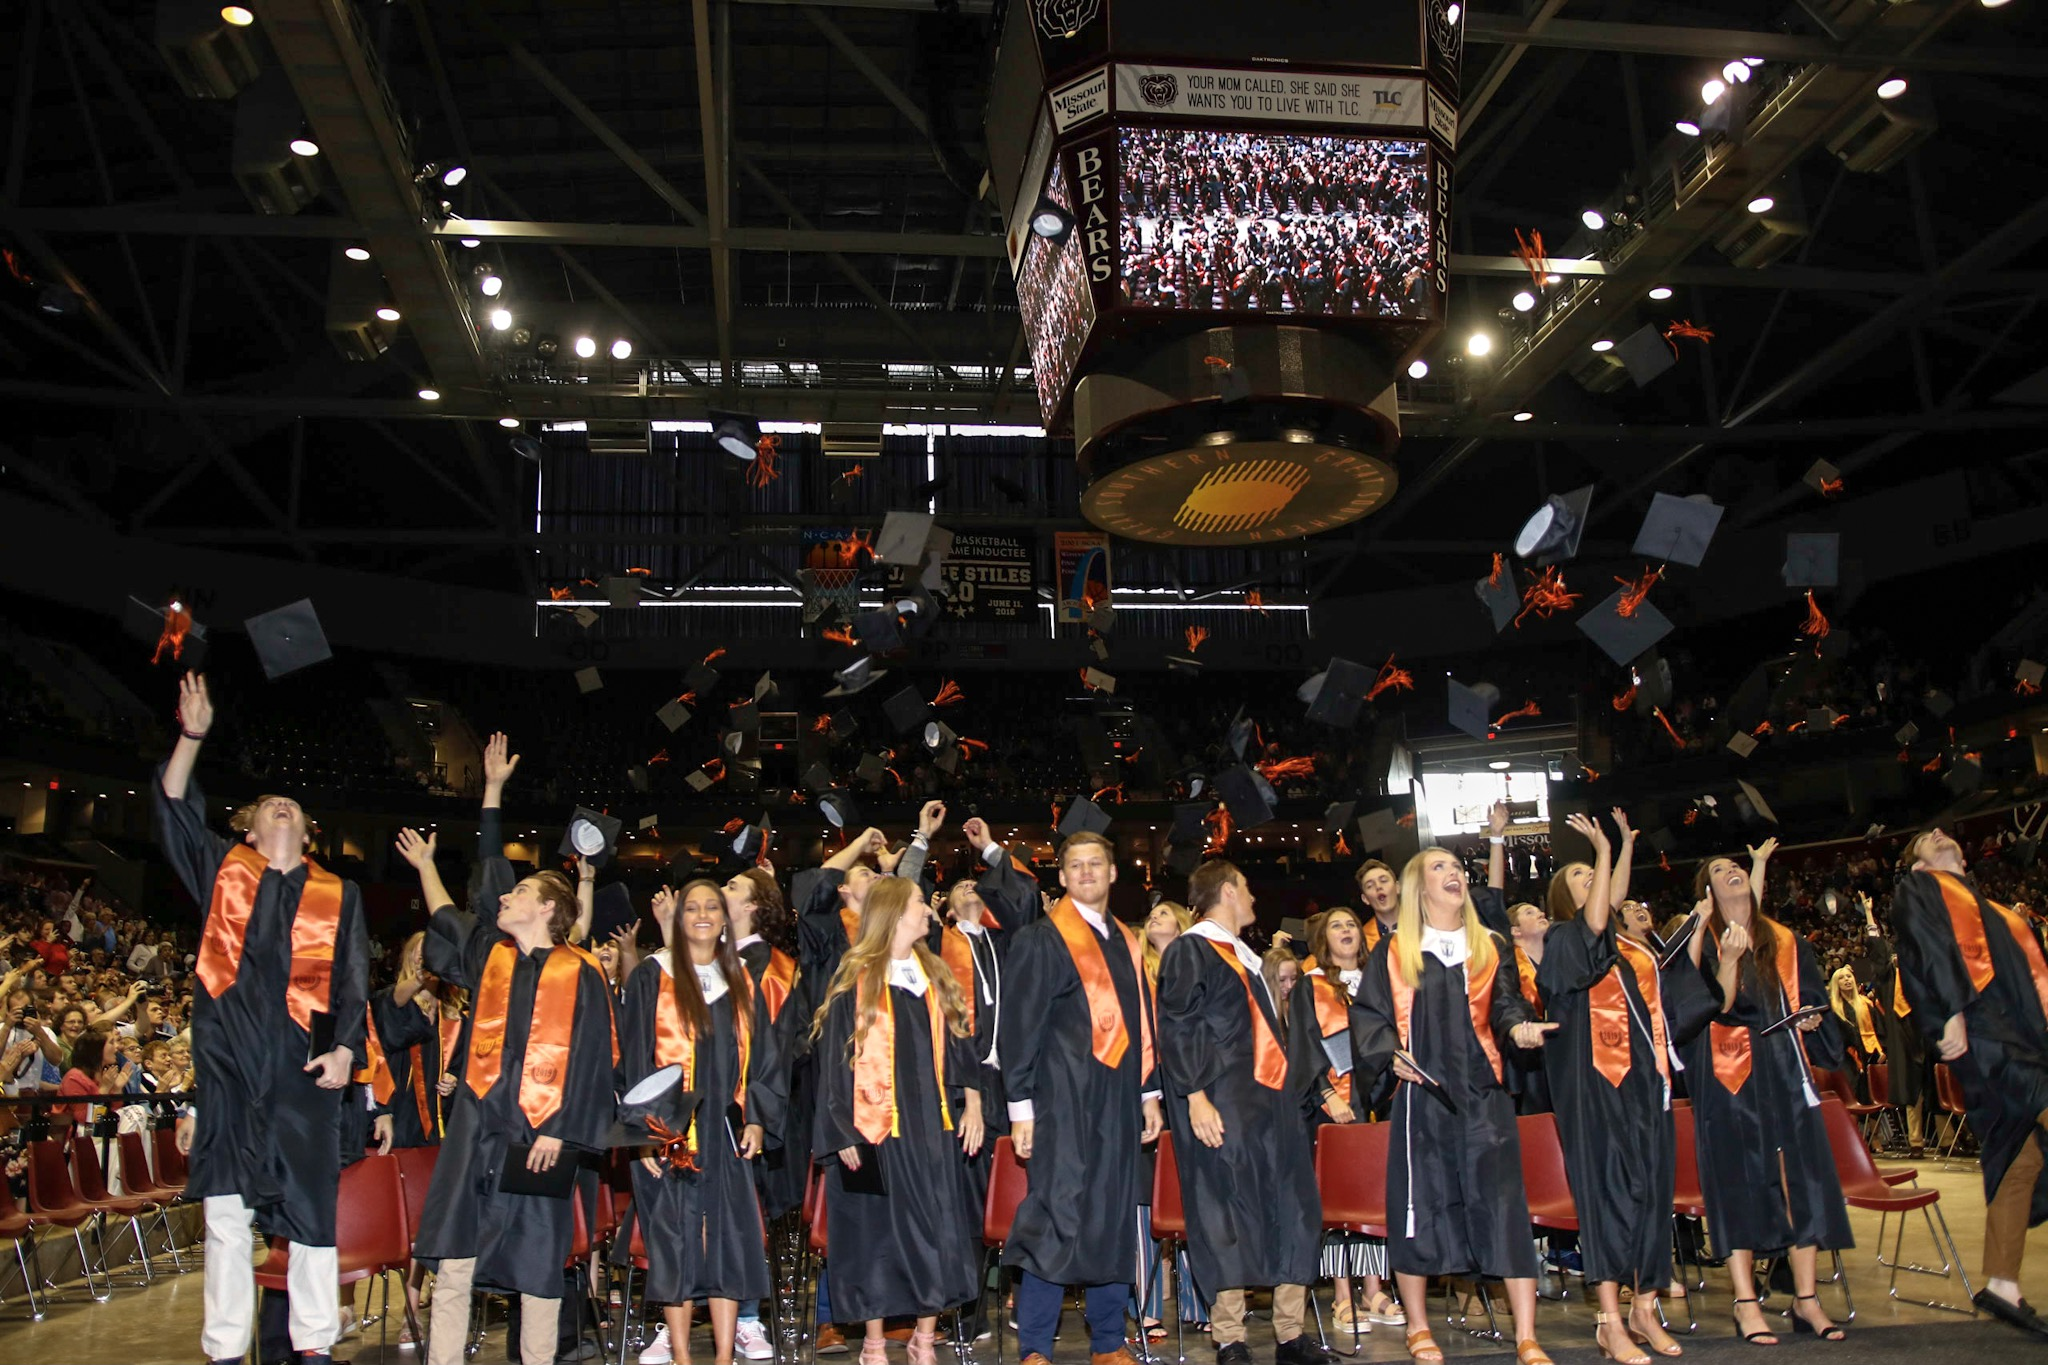 Photos: Graduation 2019